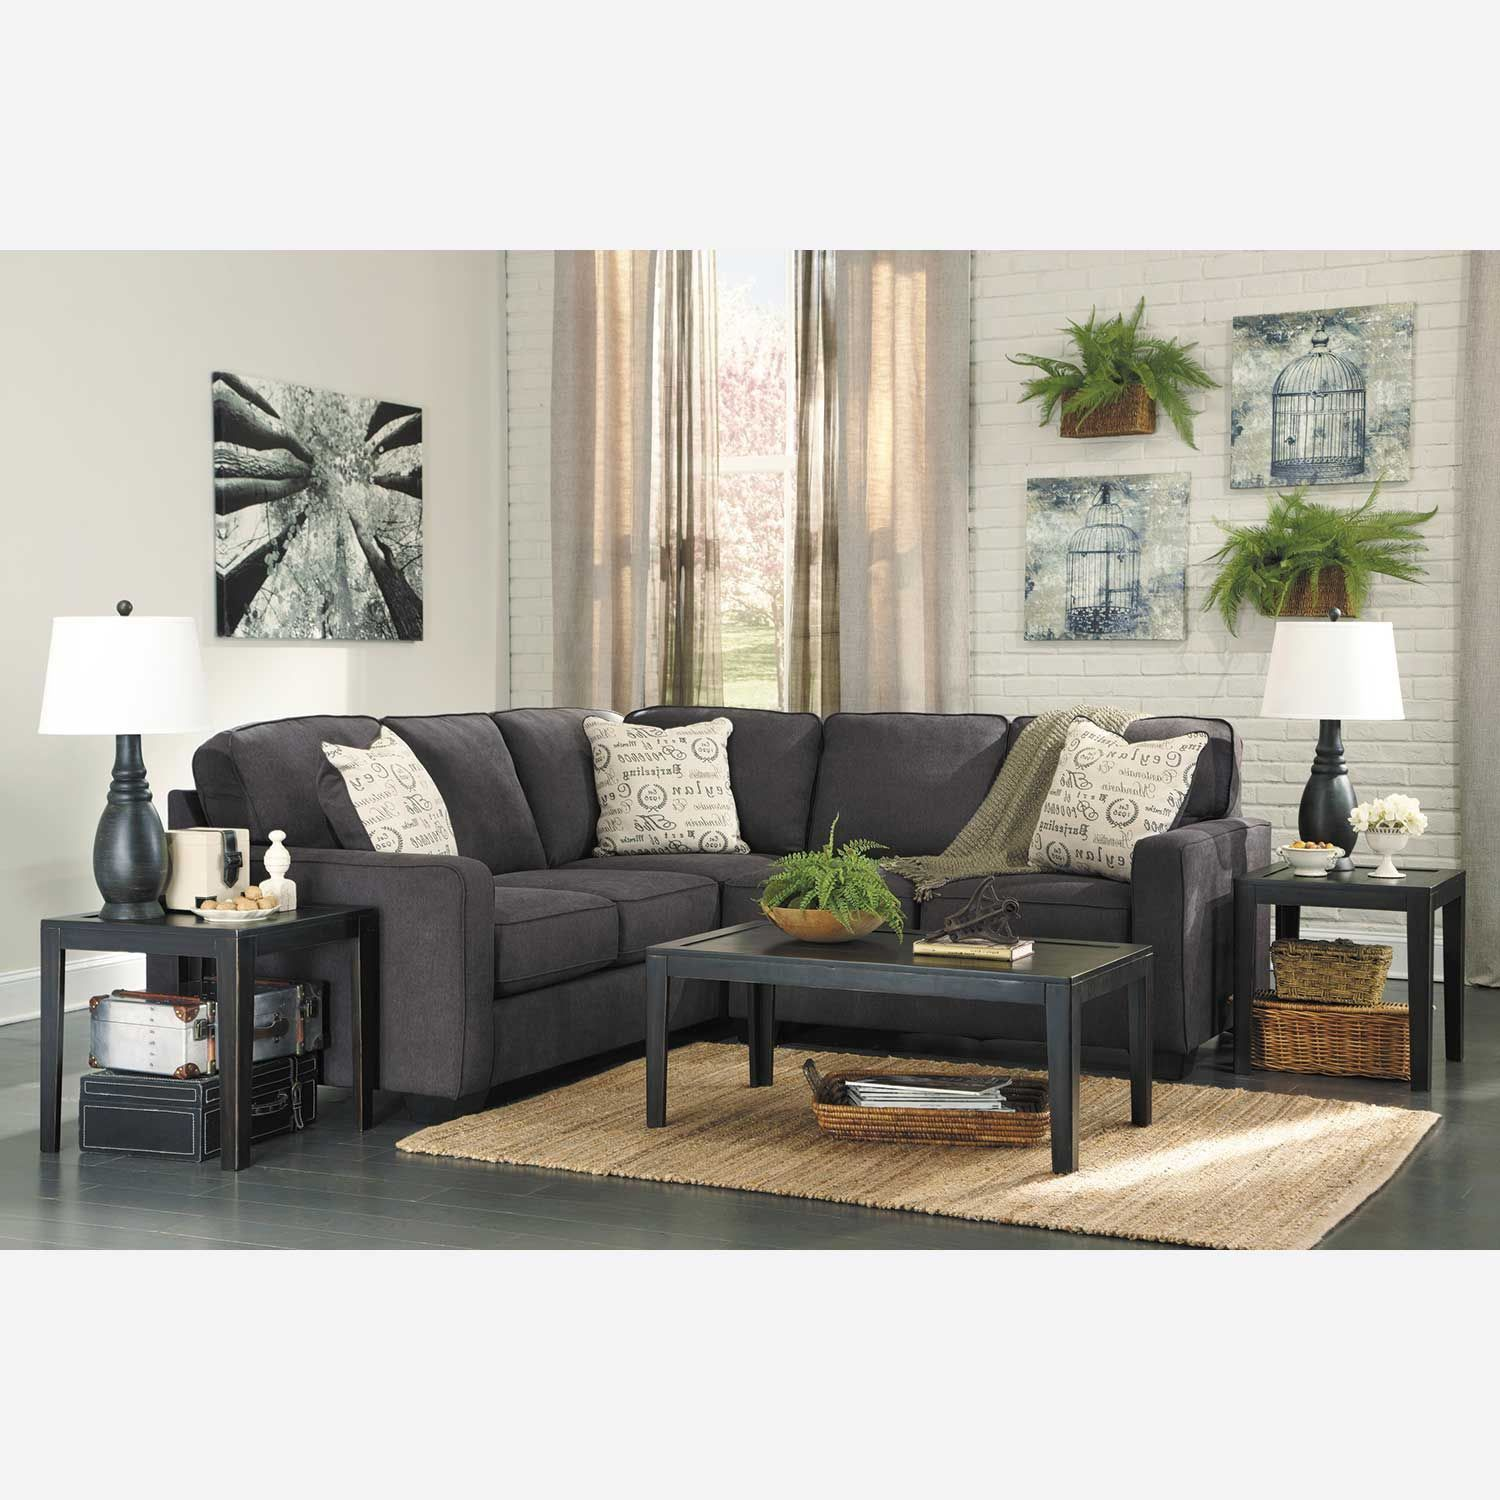 Pc charcoal sectional with laf at american furniture warehouse